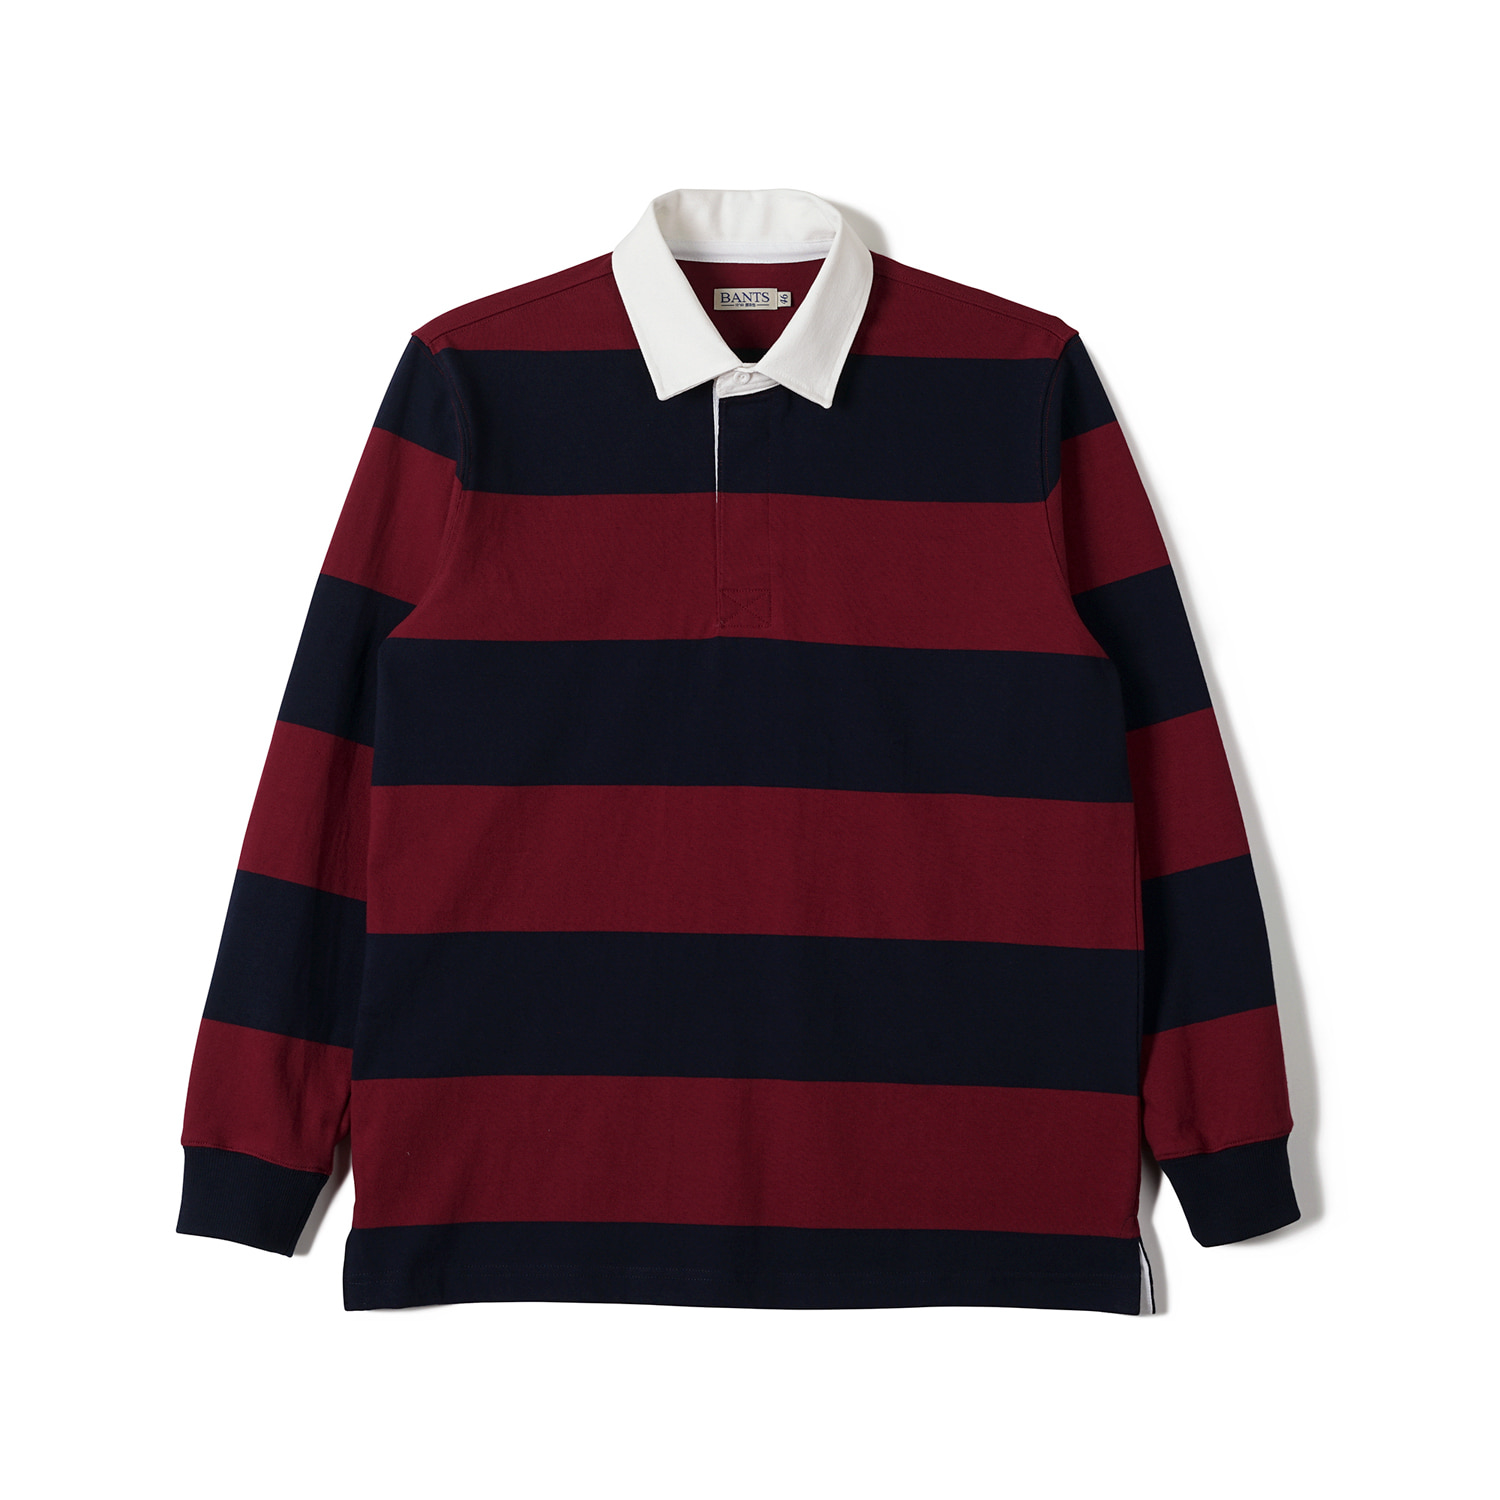 FLB Stripe Cotton Rugby T-shirt Burgundy x NavyBANTS(반츠)